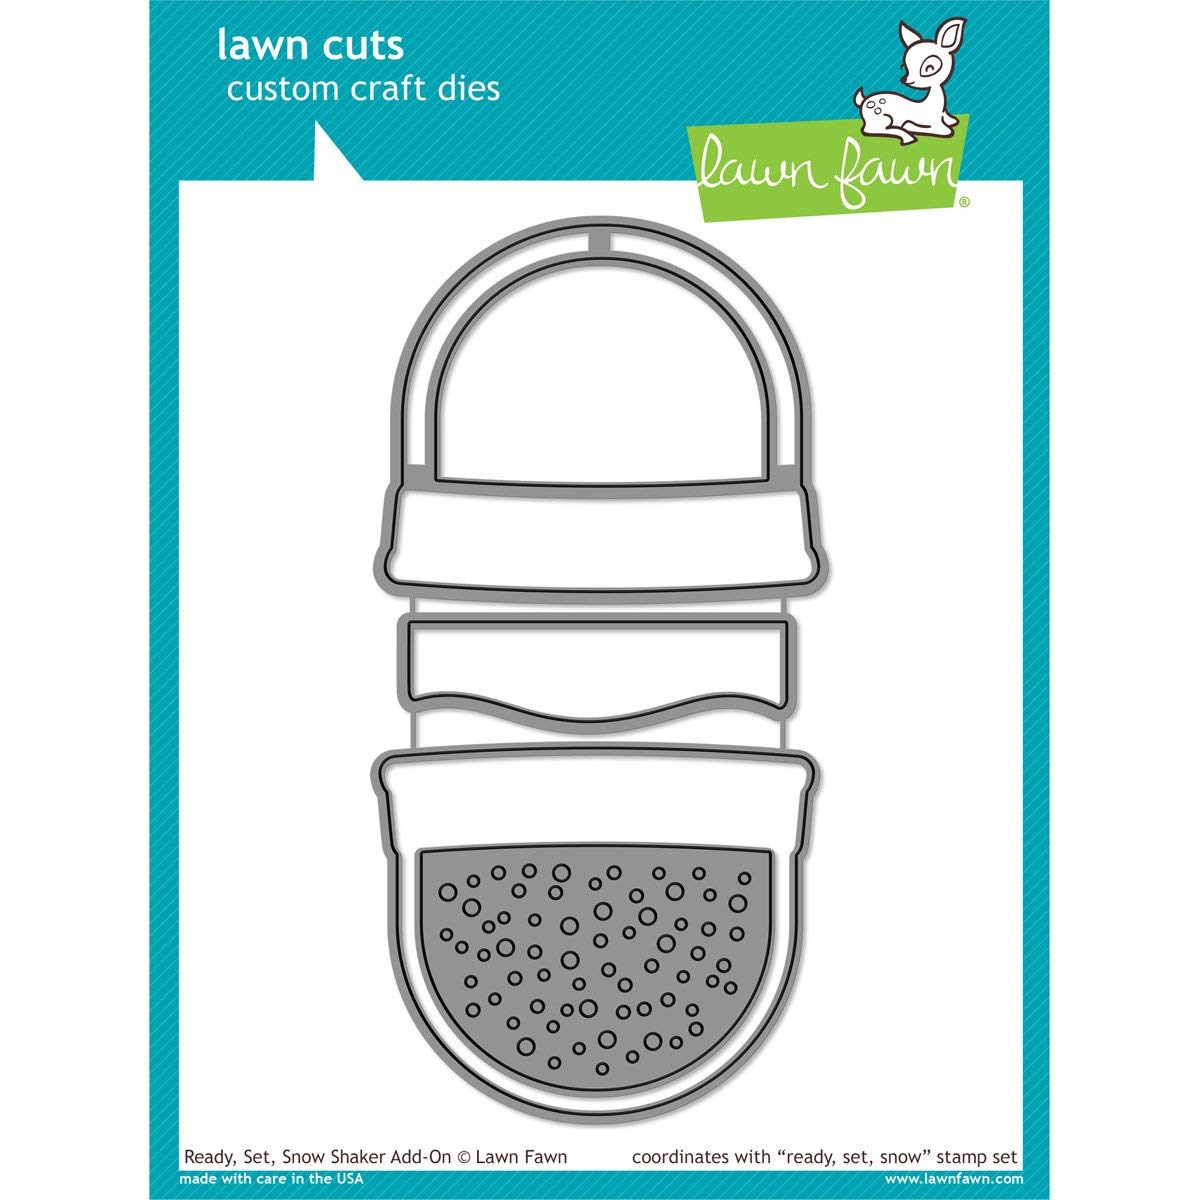 Lawn Fawn Lawn Cuts Custom Craft Die - LF975 Ready, Set, Snow Shaker Add On